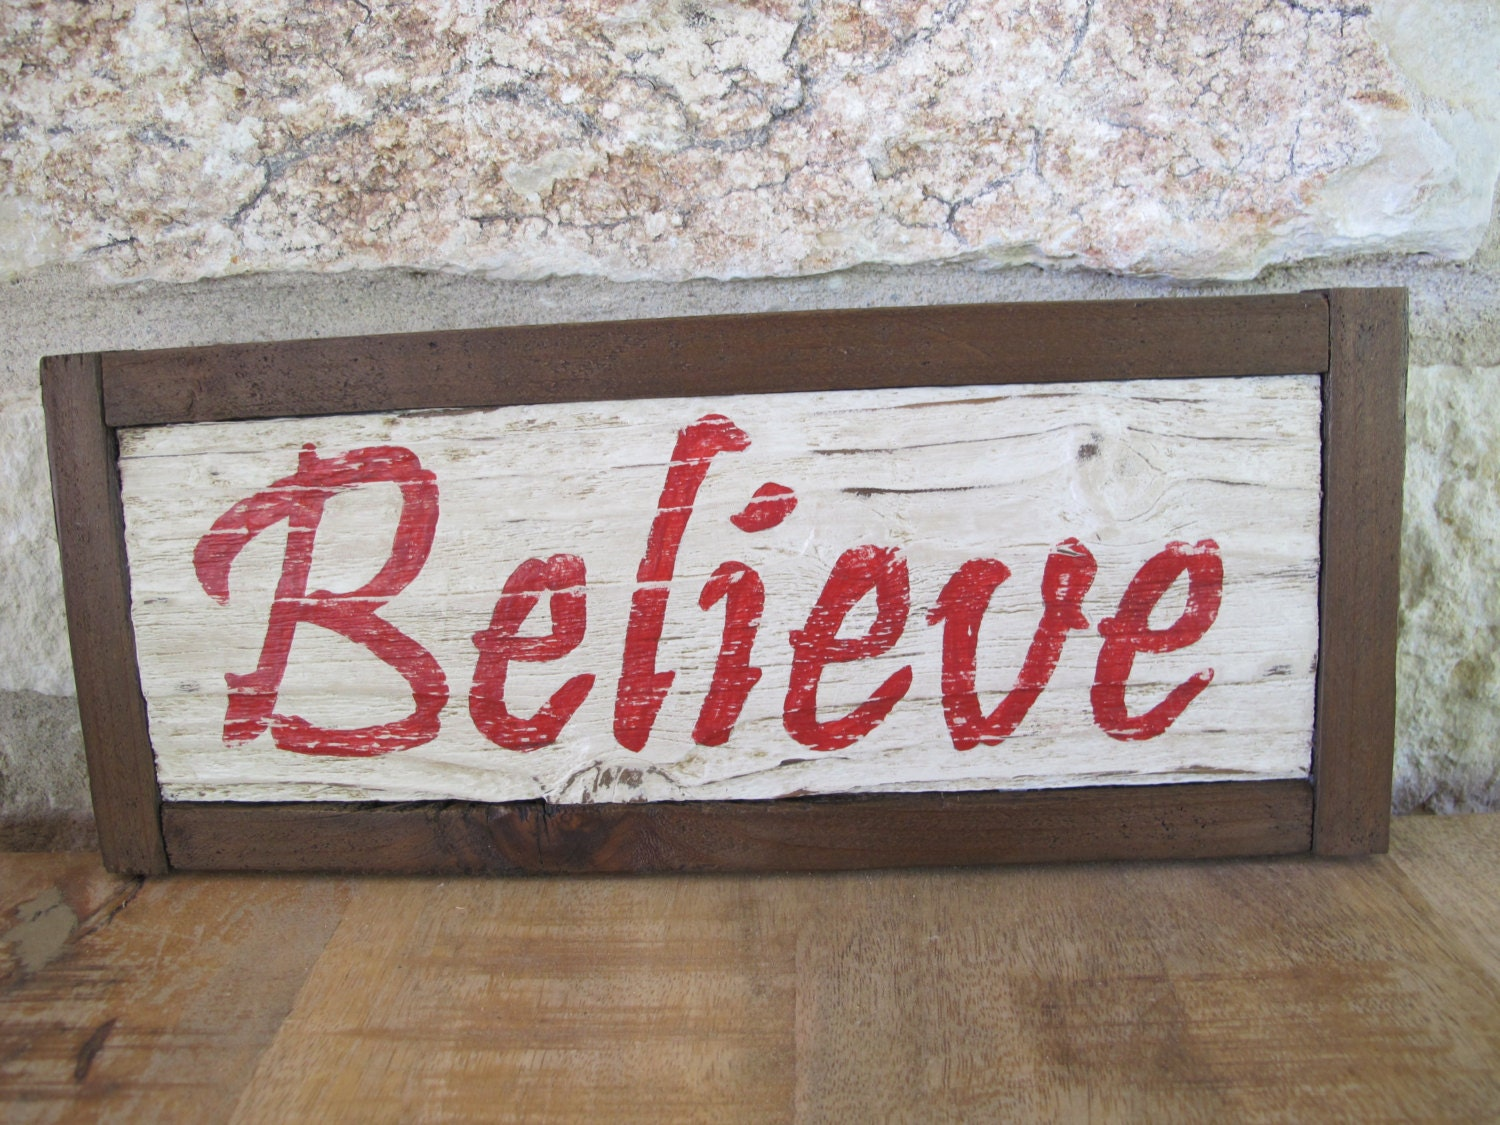 Believe Hand Made Hand Painted Vintage Look Wooden Sign. Diversion Signs Of Stroke. Mapping Signs Of Stroke. Major Stroke Signs. James Signs Of Stroke. Cellphone Signs. Symbols Signs. Tolerate Signs. Witch Signs Of Stroke